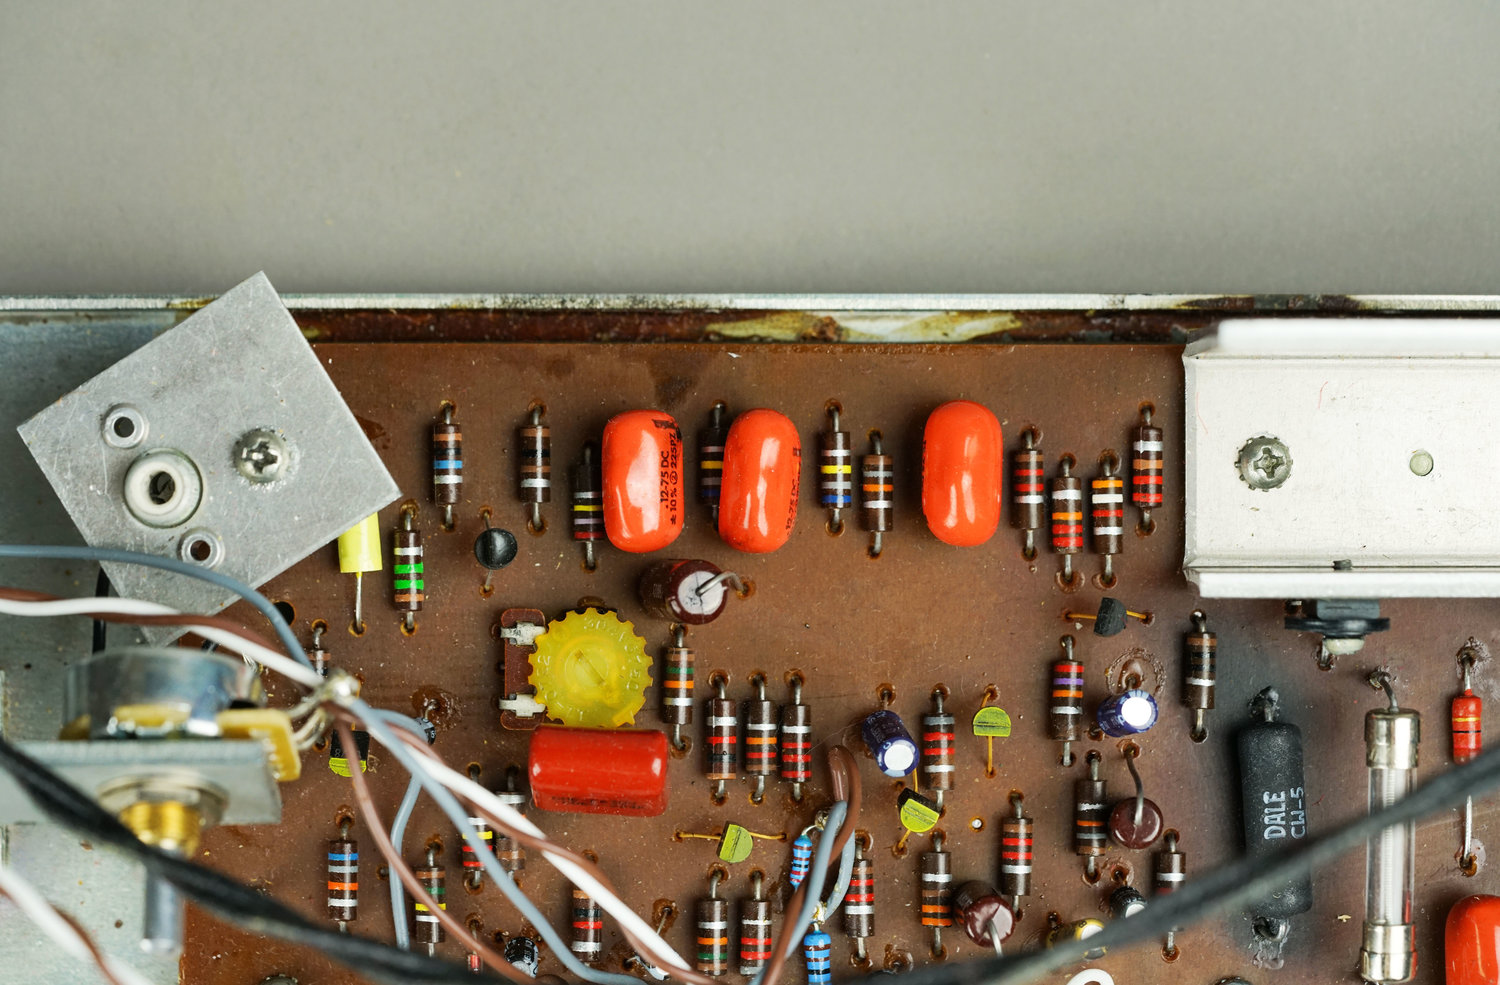 What Components Should I Replace in My Vintage Wurlitzer Amp, and Why?